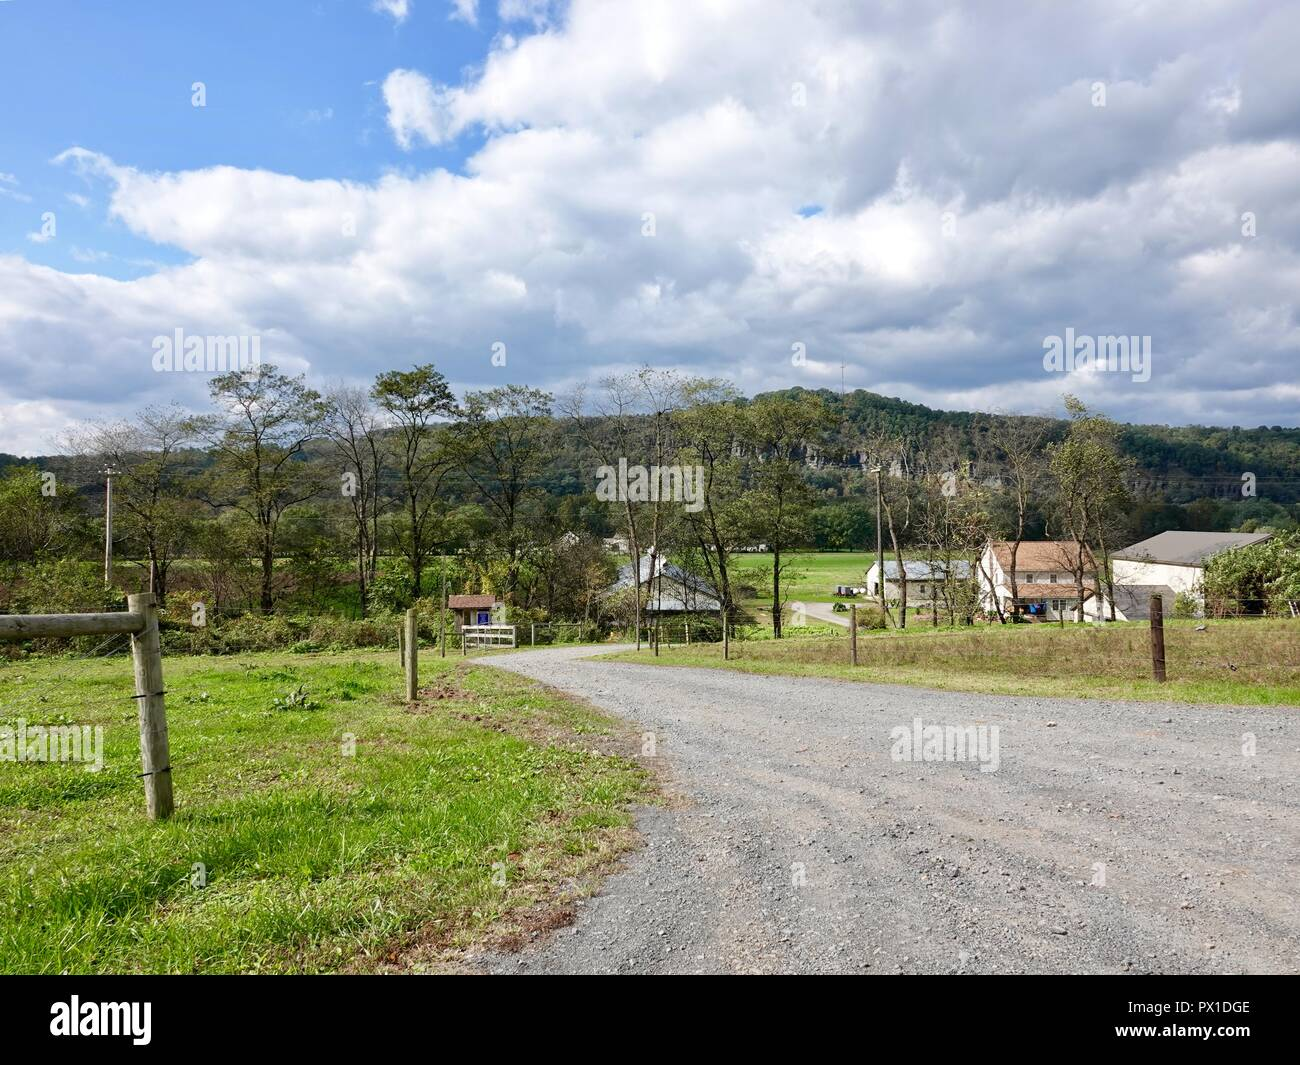 Looking down graded road towards farm land and homes in sparsely populated area of rural Lycoming County, Pennsylvania, USA. - Stock Image